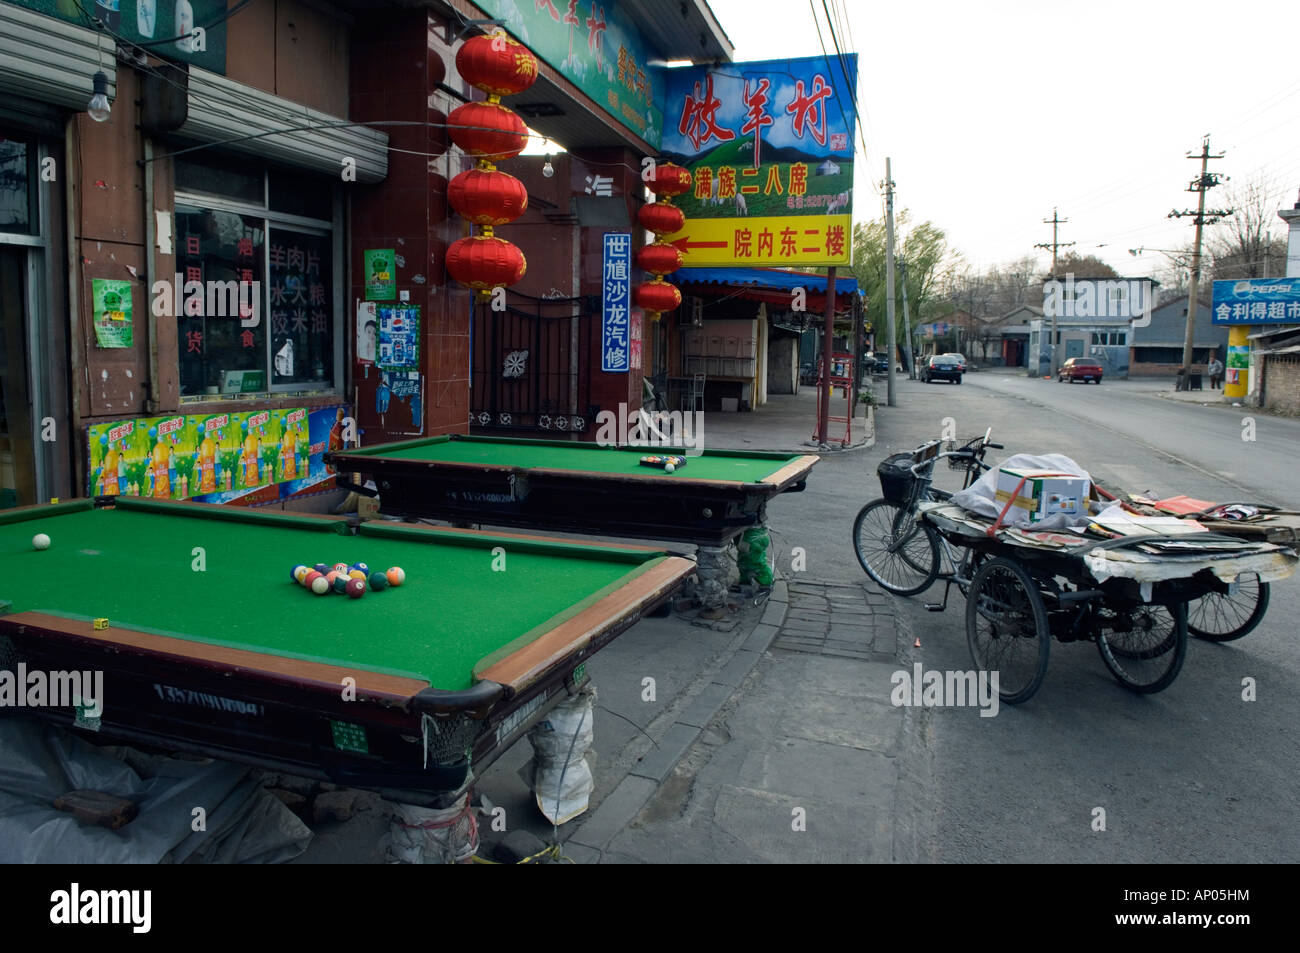 Pool Tables Outside On The Street Of A Local Neighbourhood Beijing China